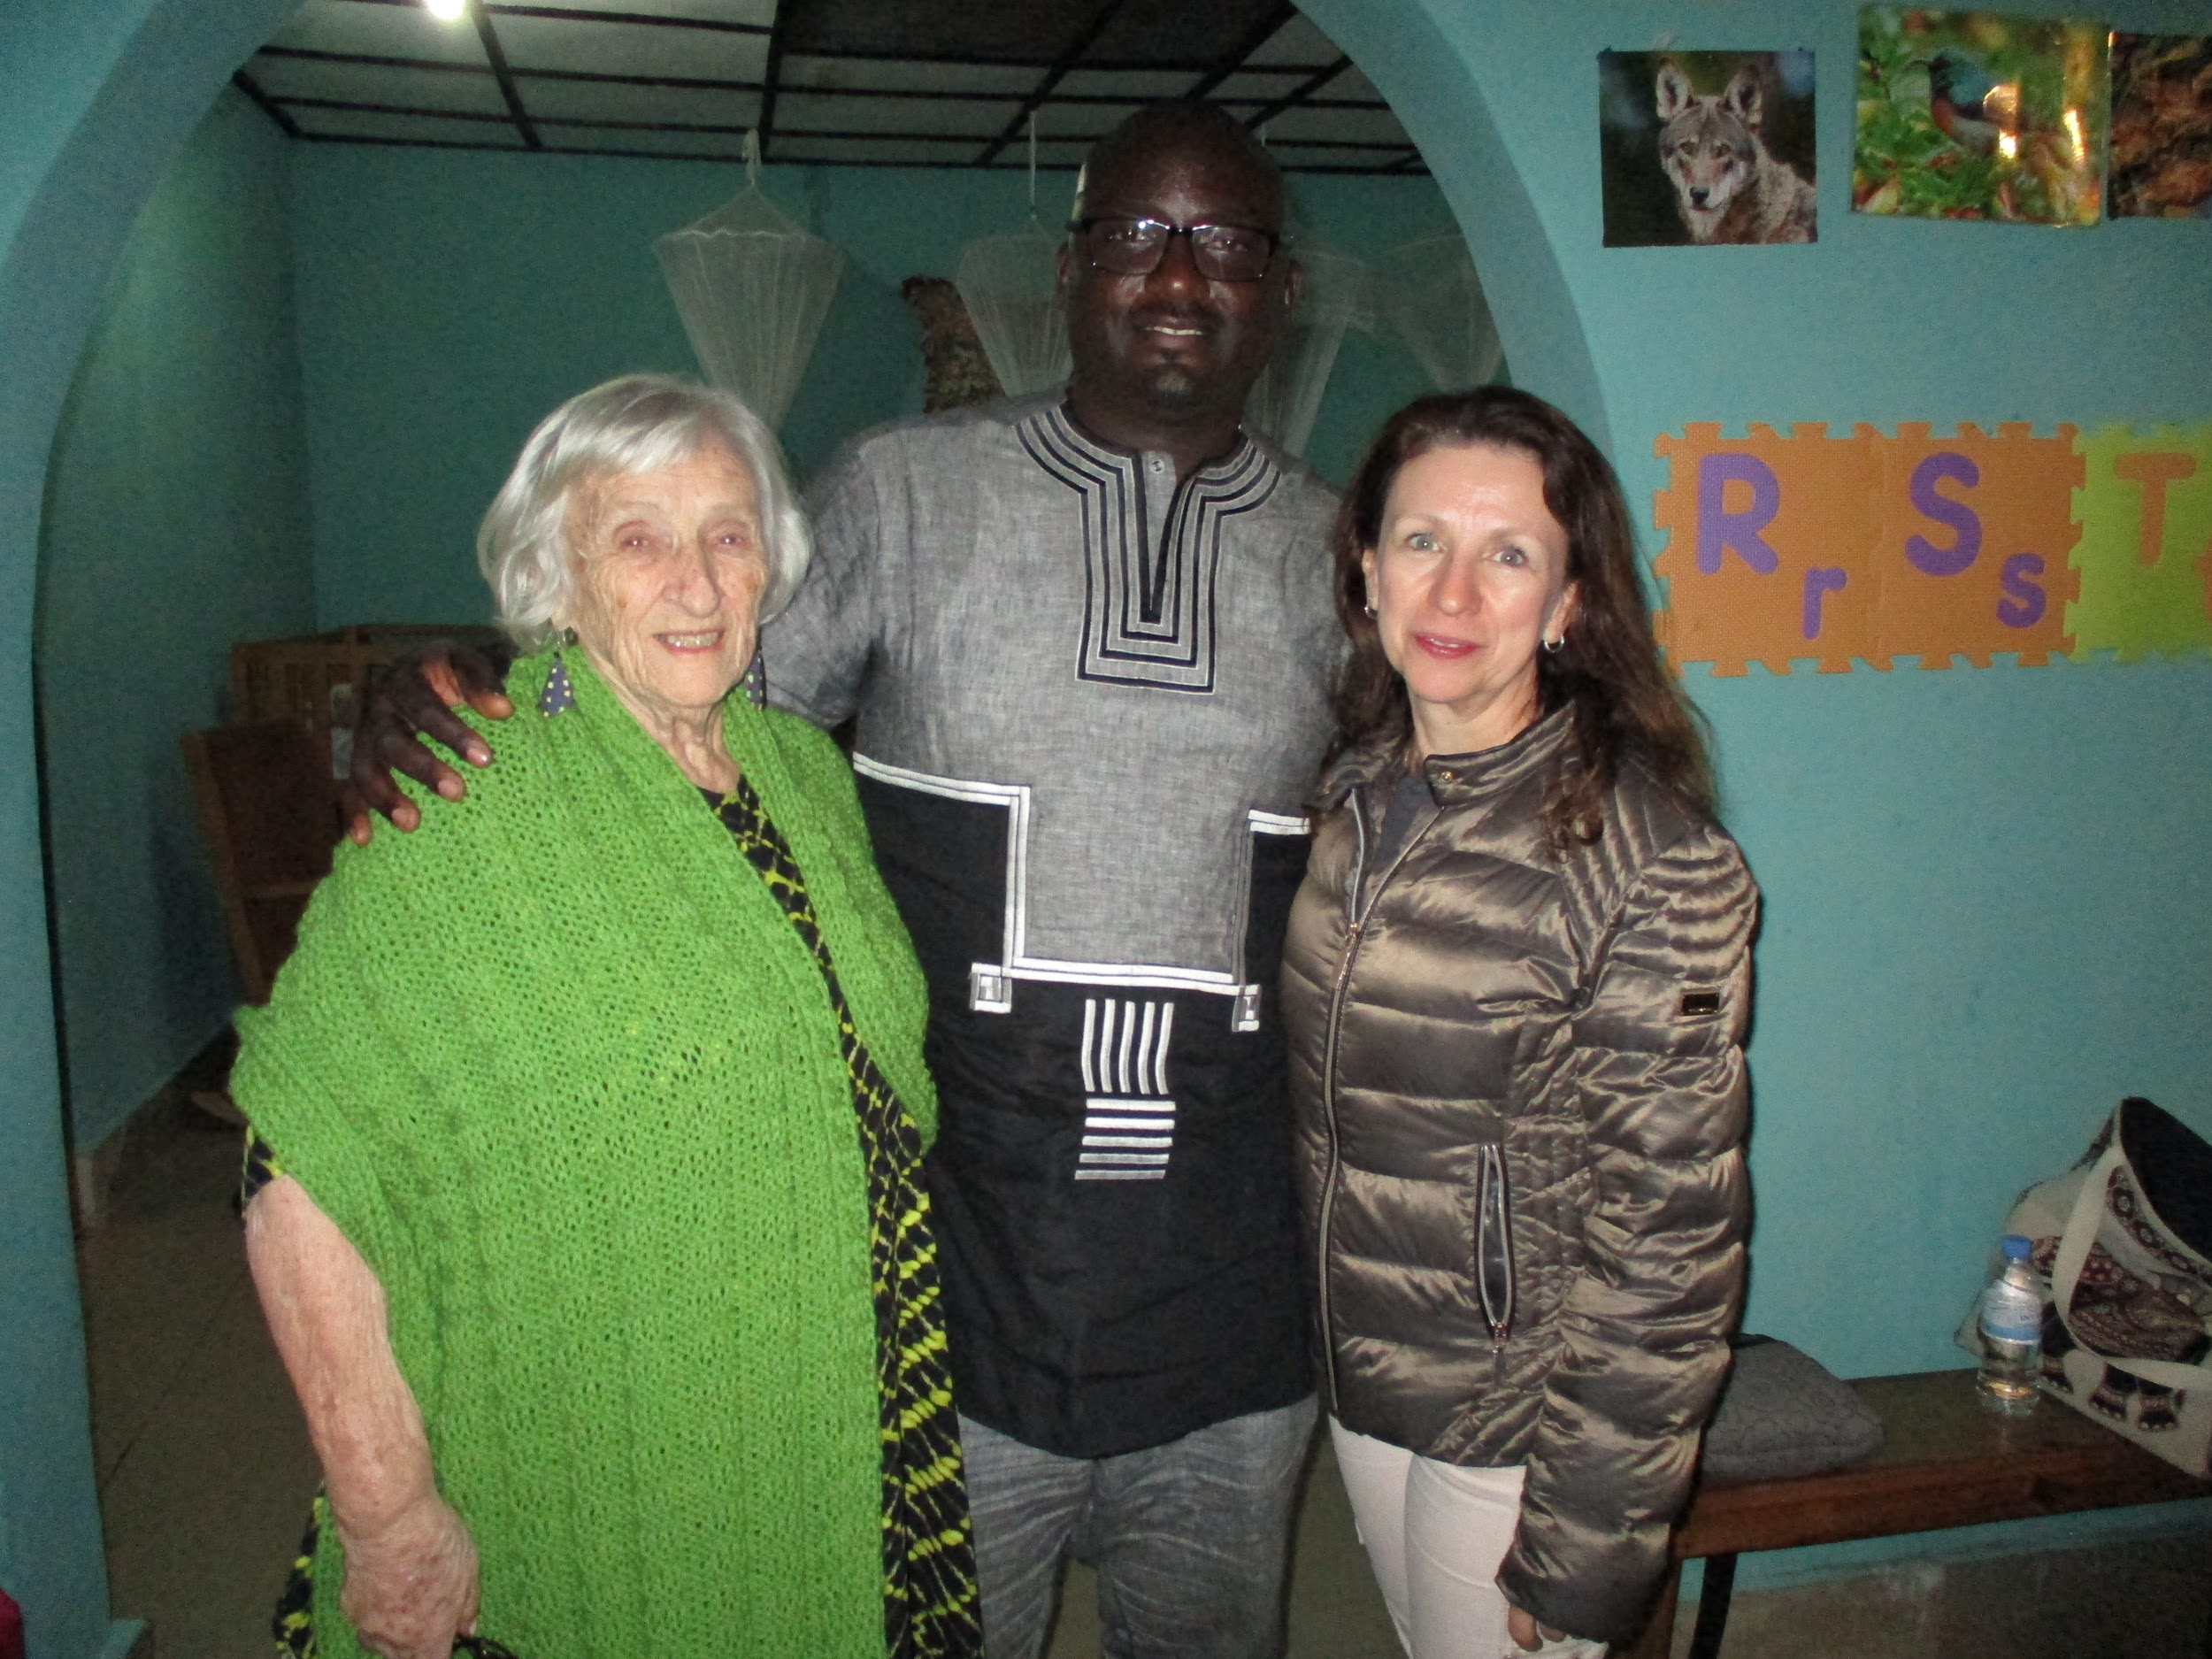 Modeling the new shawl. Mama posing with Urukundo executive director Jean Marie Ntwari and Gabrielle after devotions.